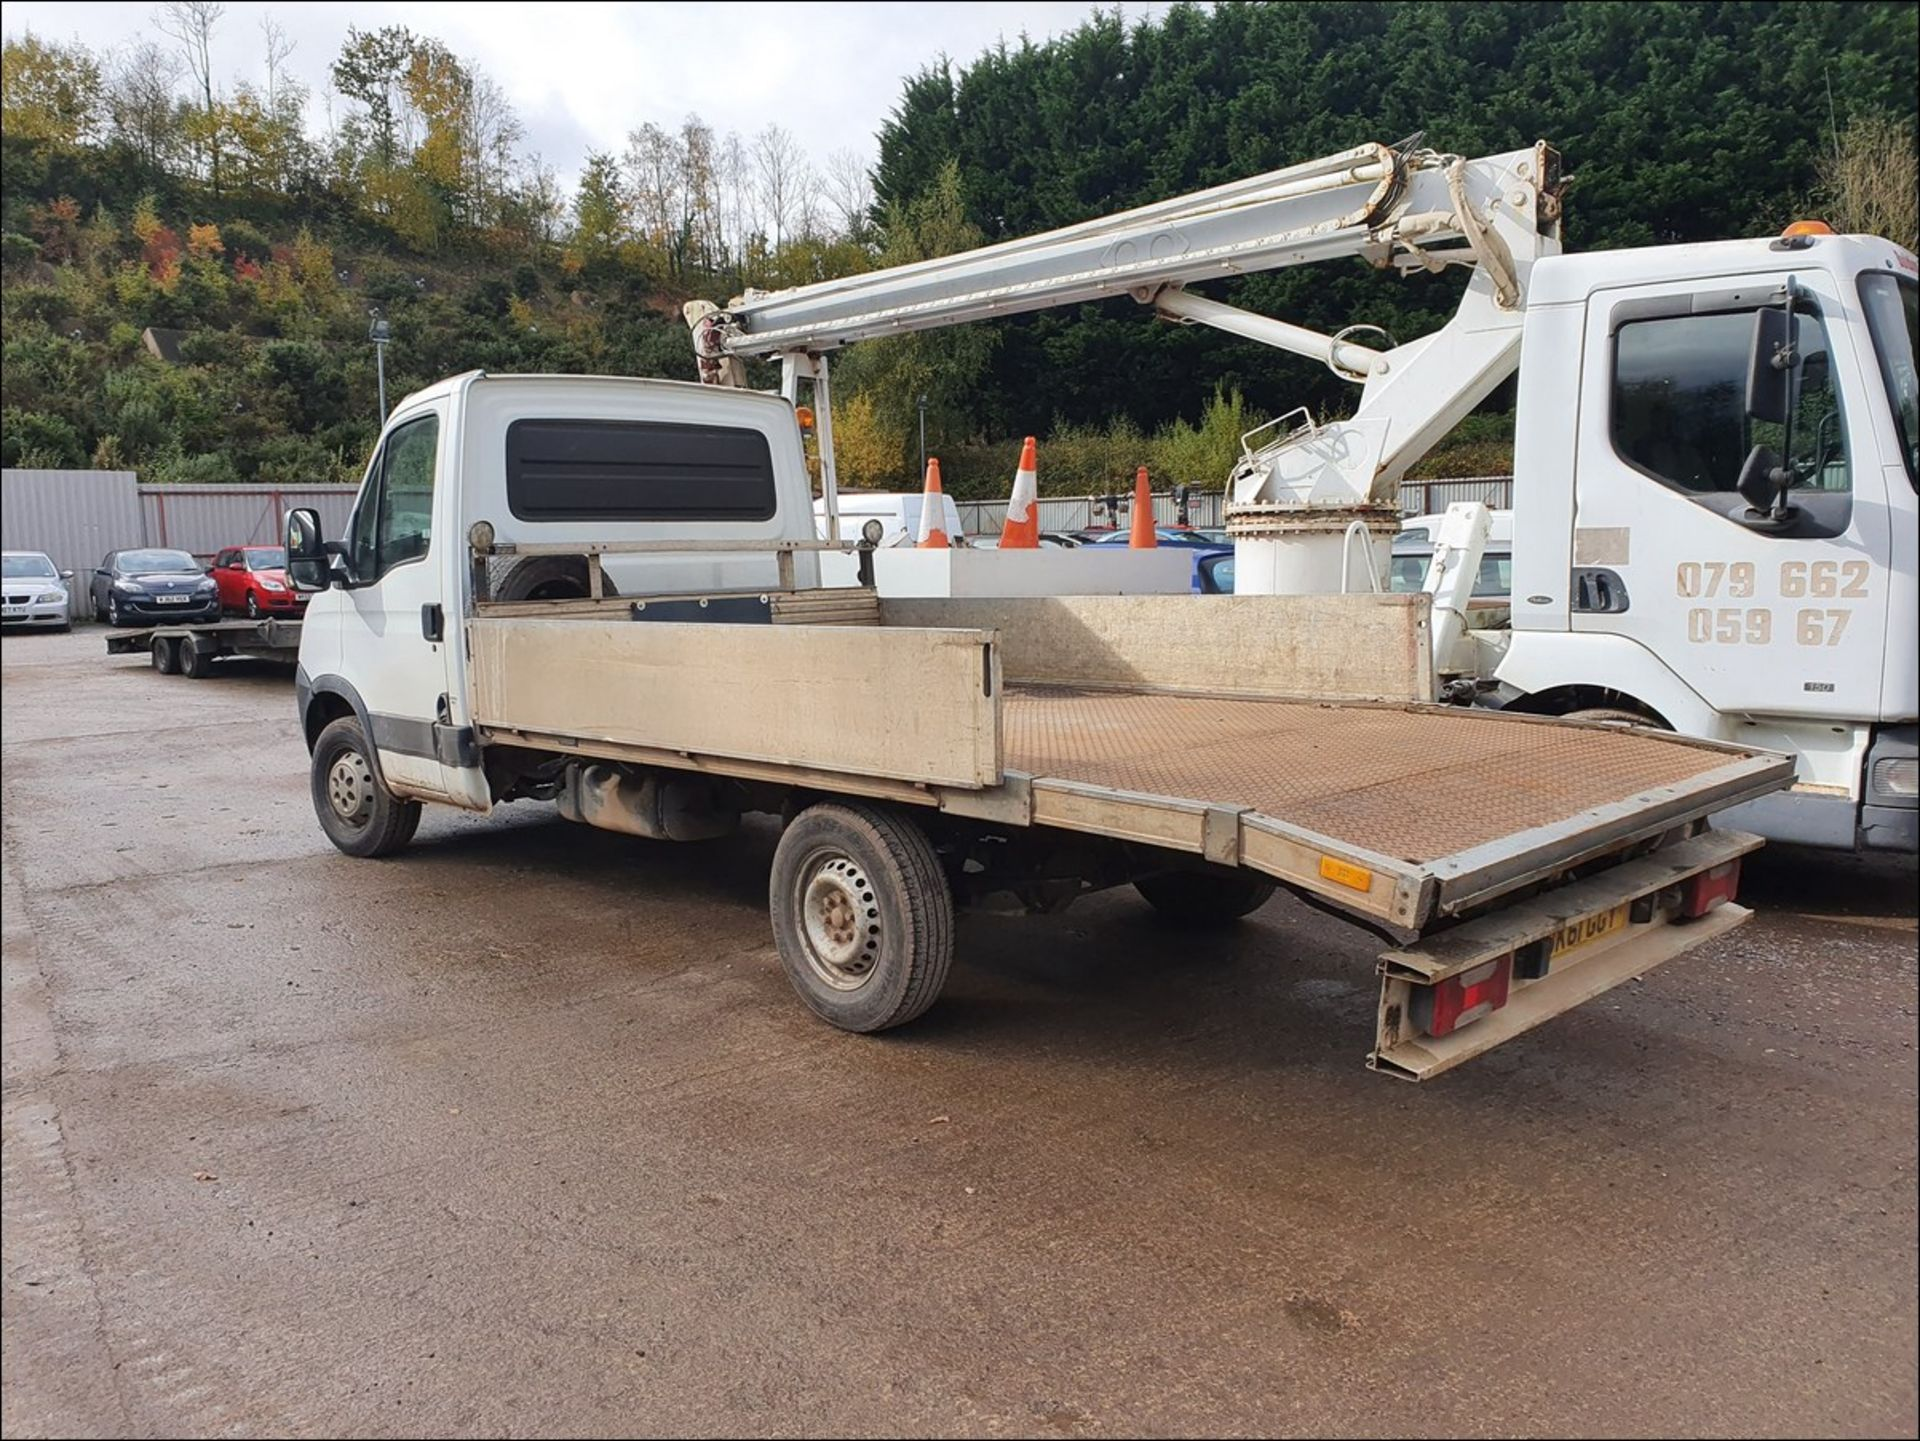 11/61 IVECO DAILY 35S11 MWB - 2287cc 2dr Flat Bed (White/blue, 194k) - Image 5 of 9